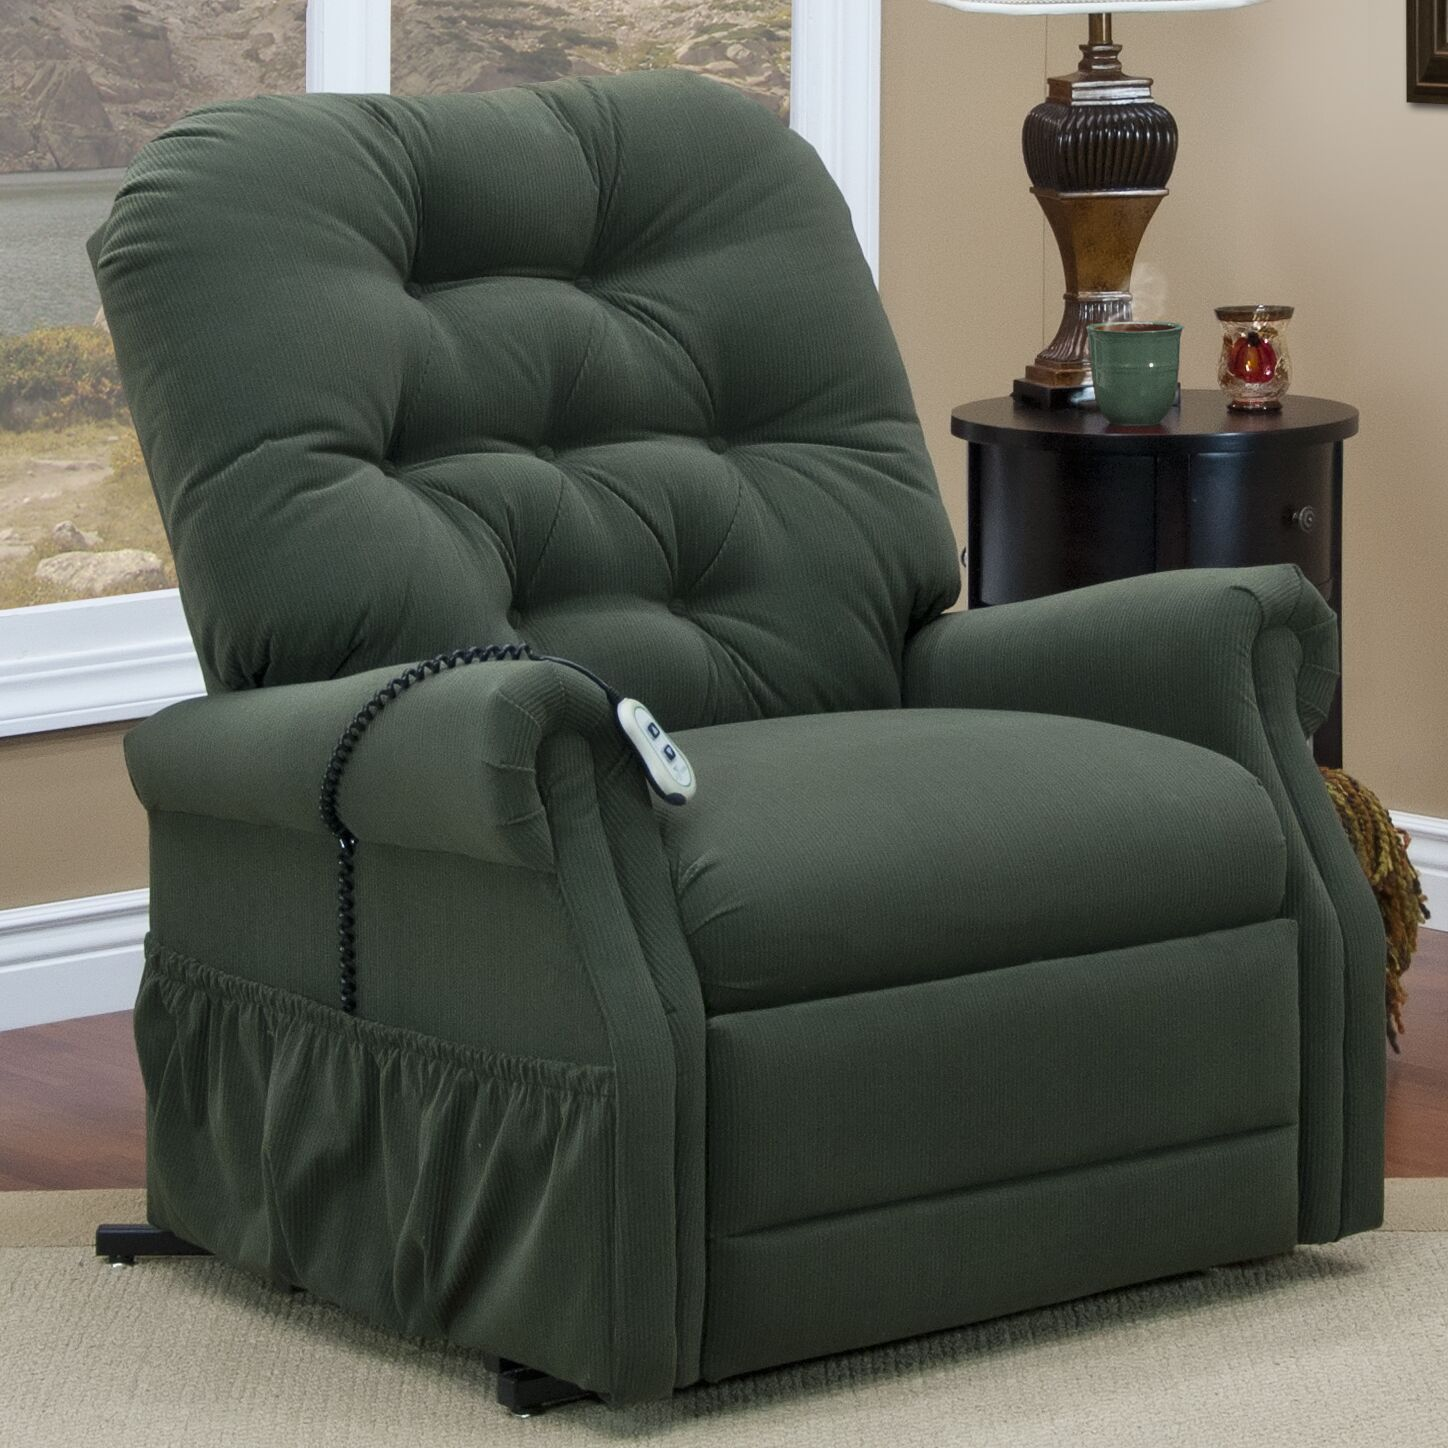 35 Series Power Lift Assist Recliner Moveable Infrared Heat: Yes, Vibration and Heat: 4 Vib / Heat, Upholstery: Aaron - Hunter